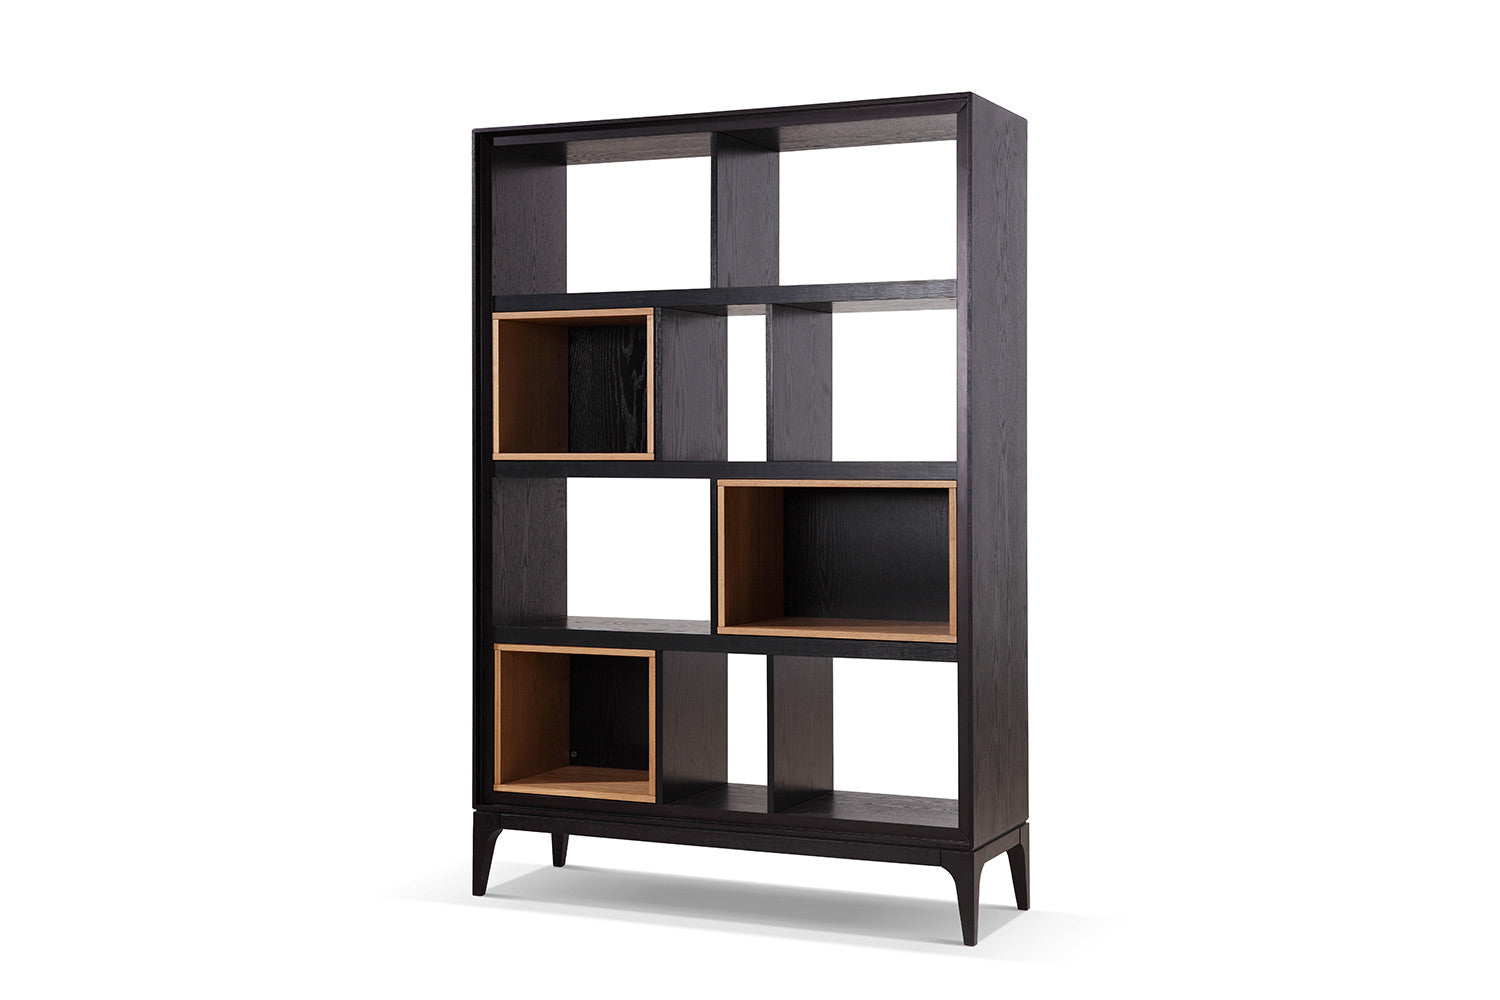 biblioth que vintage noire et bois bial dewarens. Black Bedroom Furniture Sets. Home Design Ideas